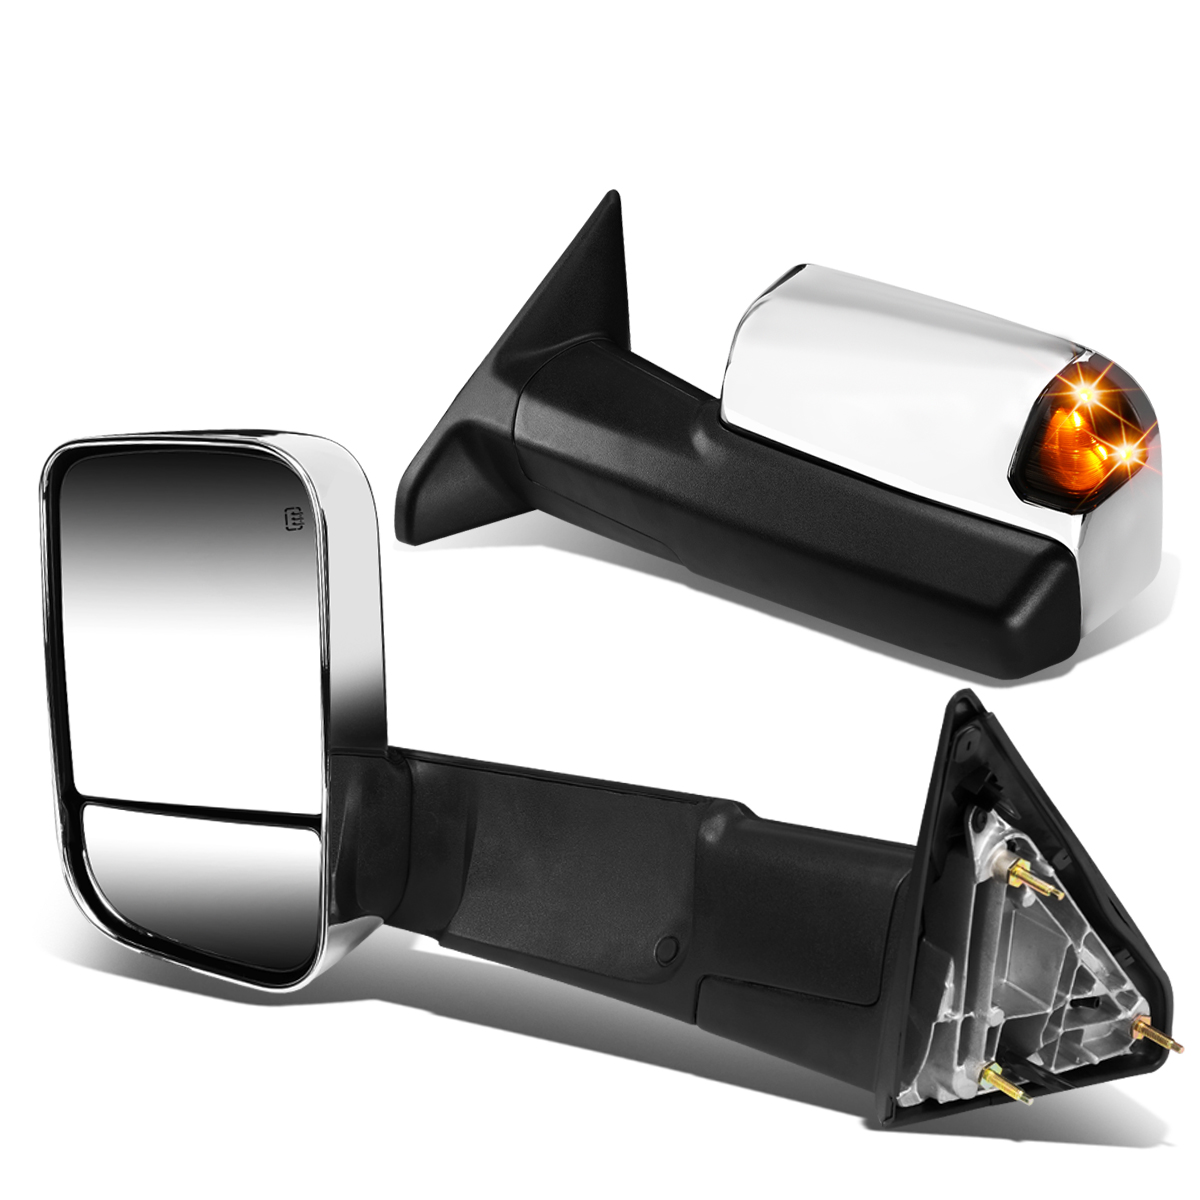 For 09-16 Dodge Ram Pair of Chrome Powered + Heated Smoked Signal Glass + Foldable Extenable Side Towing Mirrors 14 15